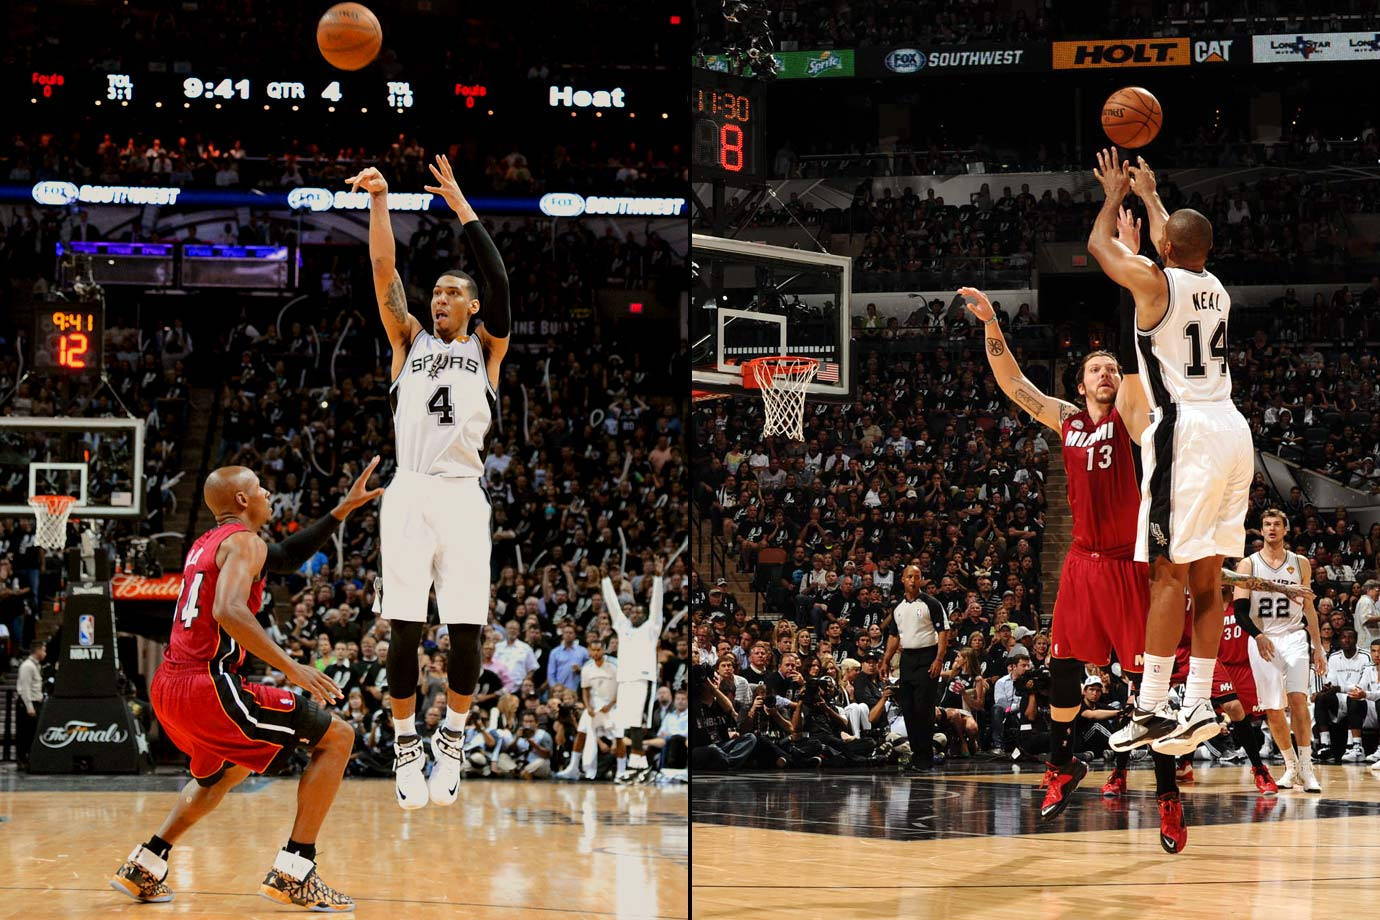 Danny Green and Gary Neal led the Spurs to a lopsided 113-77 victory over the Heat. The Spurs' 16 three-pointers set an NBA Finals record. Green made seven threes while Neal sank six from behind the line as the two scored 27 and 24 points, respectively. Two games later Green would set the Finals record for made three-pointers, when he hit his 23rd.